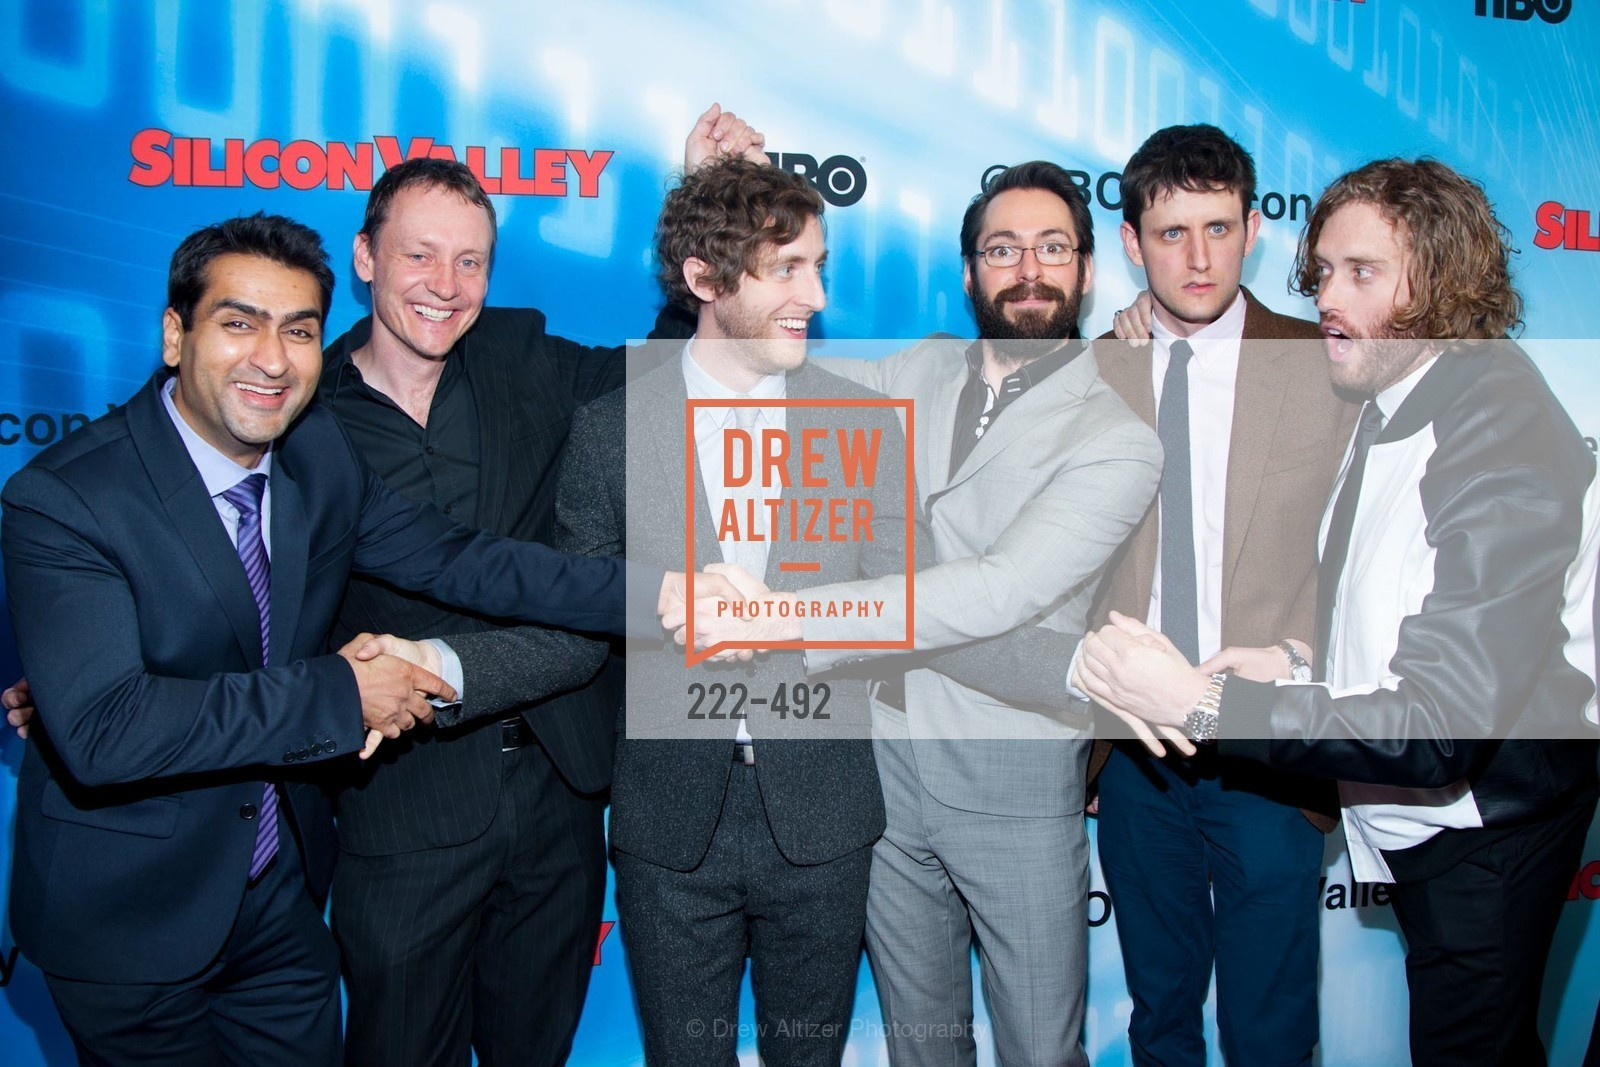 Kumail Nanjiani, Alec Berg, Thomas Middleditch, Martin Starr, Zach Woods, TJ Miller, HBO Original Series 'Silicon Valley' Bay Area Premiere, US. US, April 2nd, 2014,Drew Altizer, Drew Altizer Photography, full-service agency, private events, San Francisco photographer, photographer california